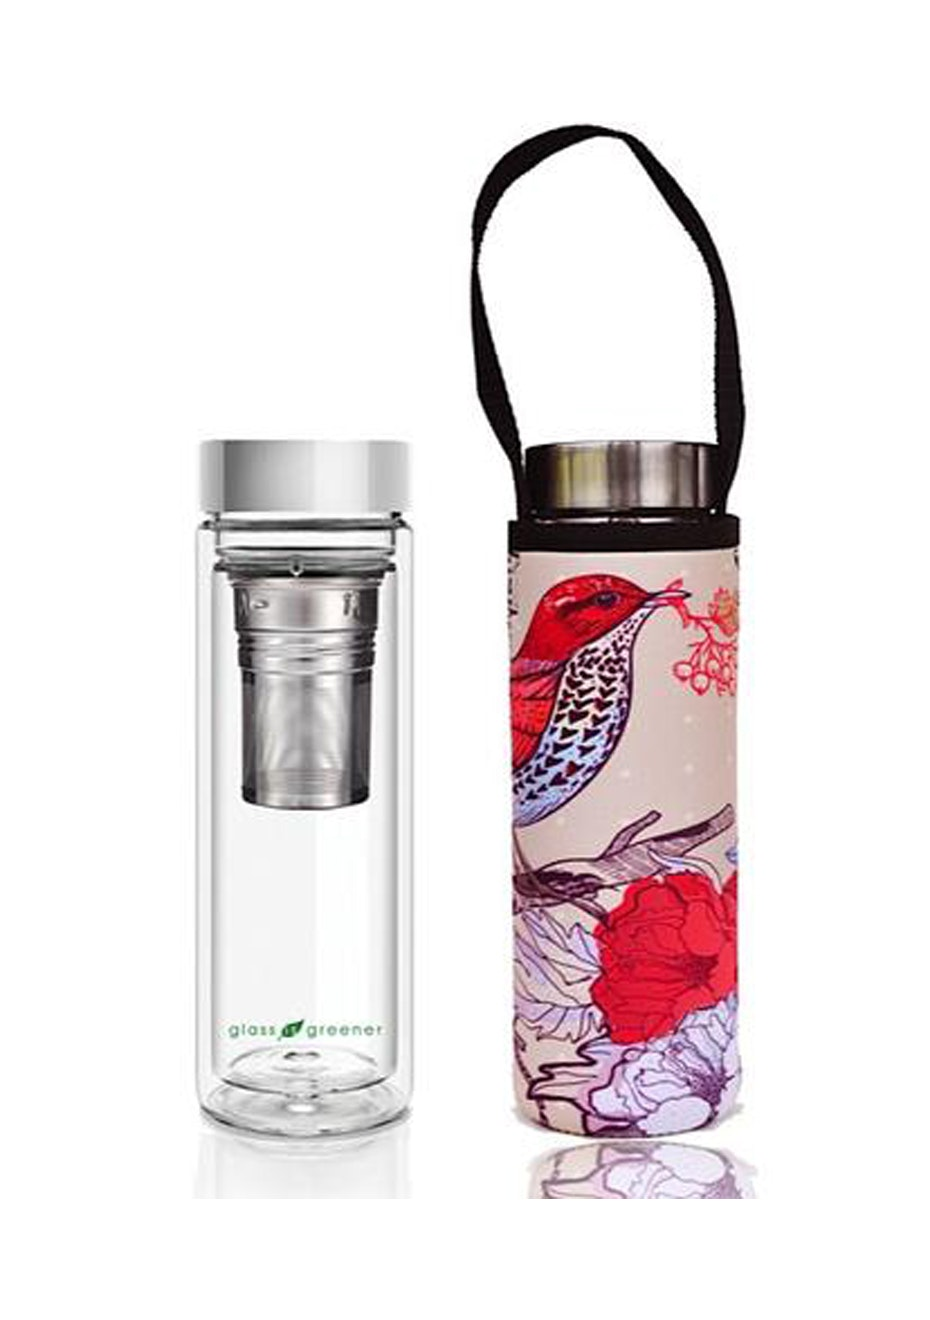 BBBYO - Glass Is Greener double-wall tea flask 500 ml + Carry Pouch (Bird Print) -500 ml